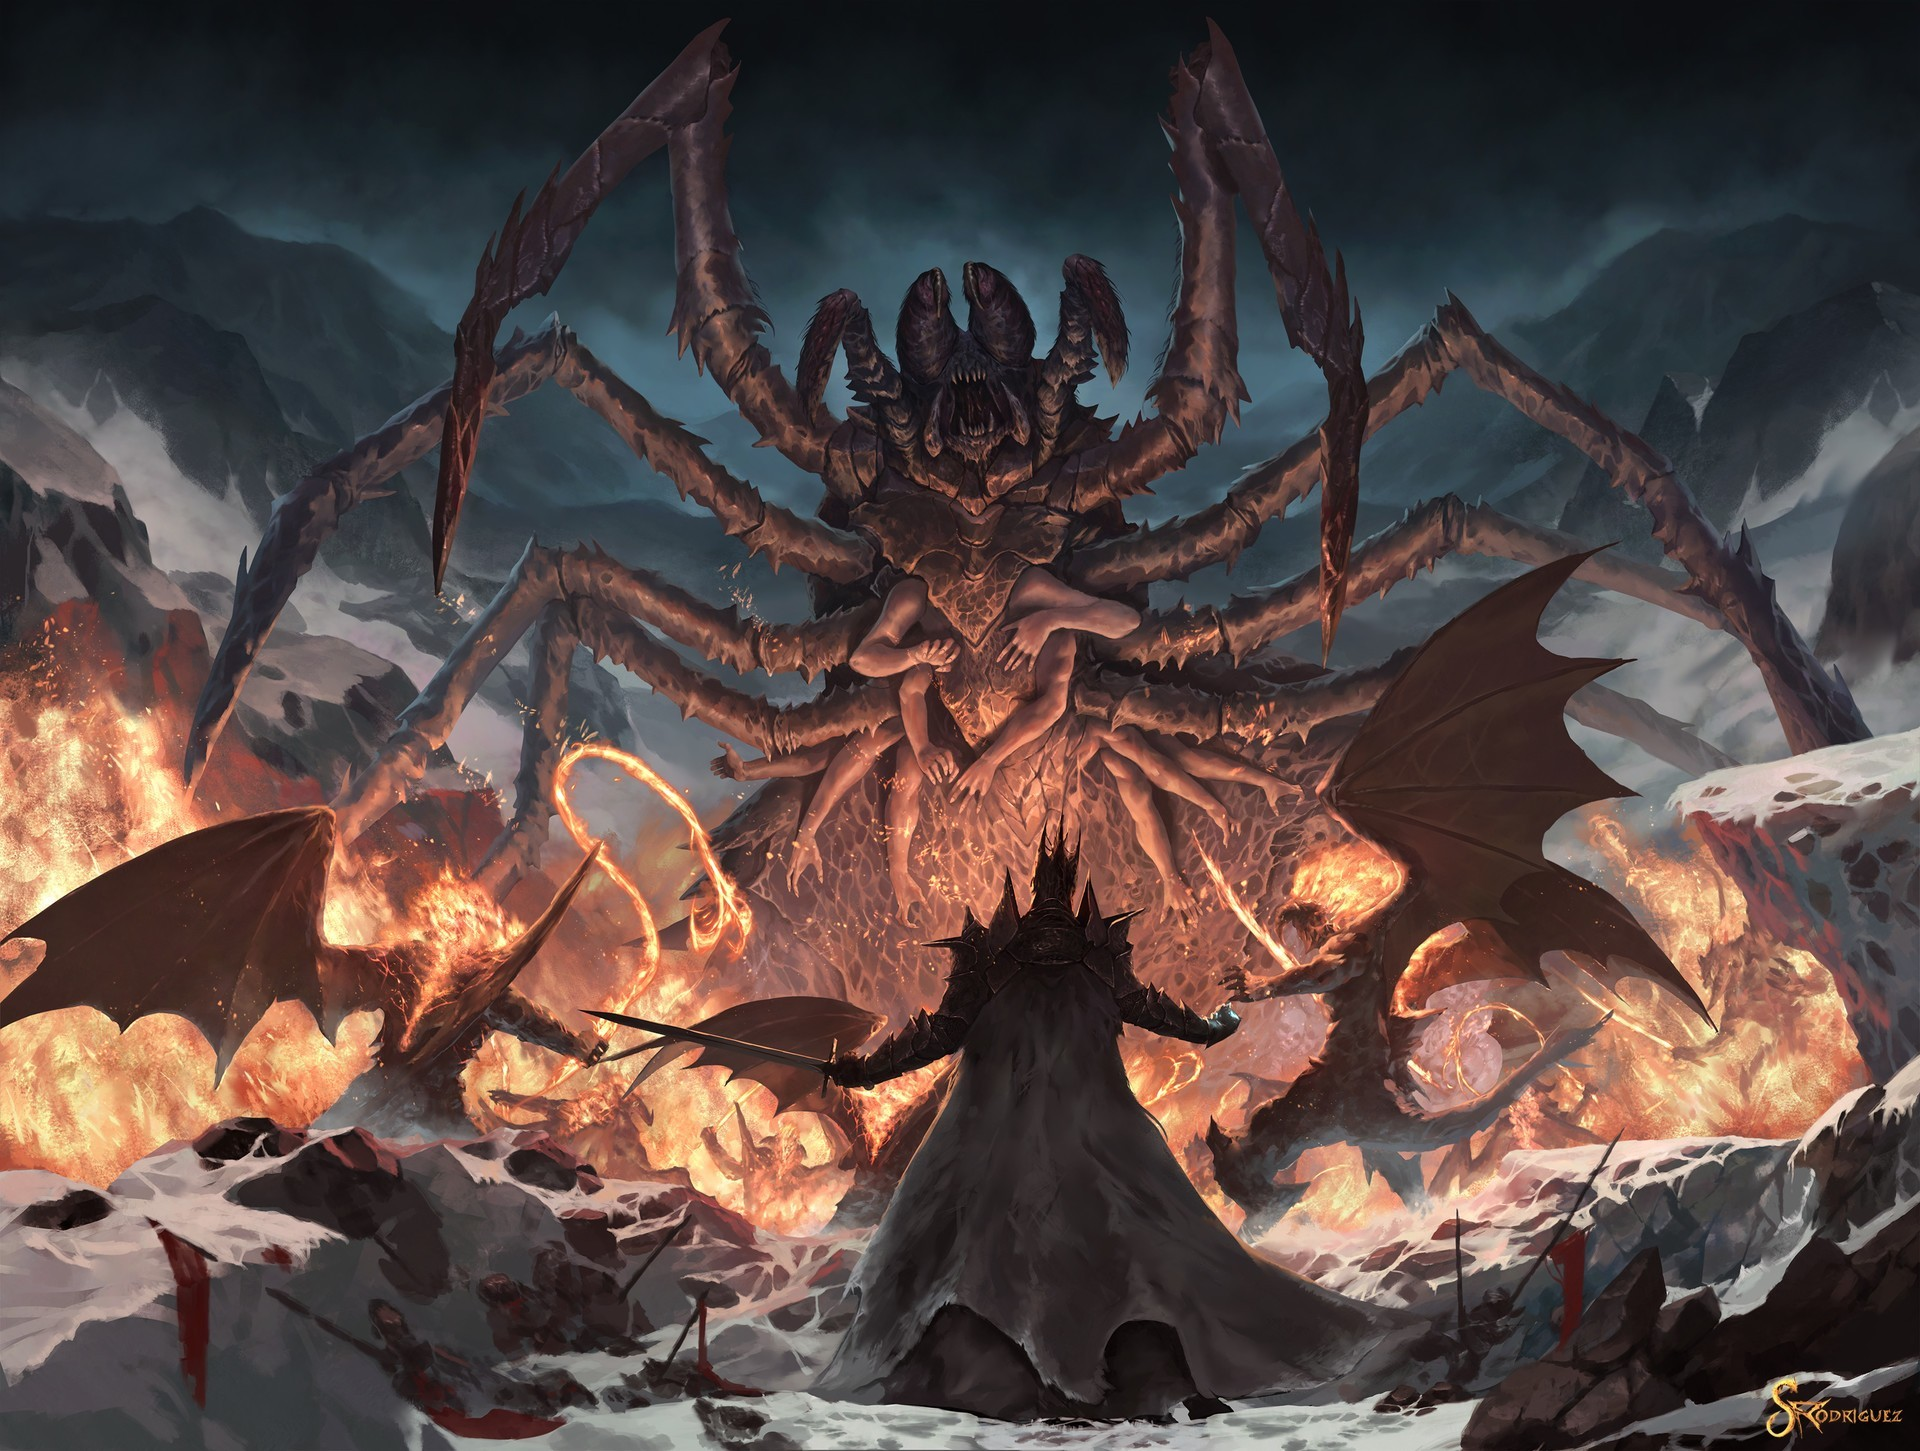 Res: 1920x1451, General  fan art demon Balrog J. R. R. Tolkien Ungoliant Melkor  Morgoth The Lord of the Rings